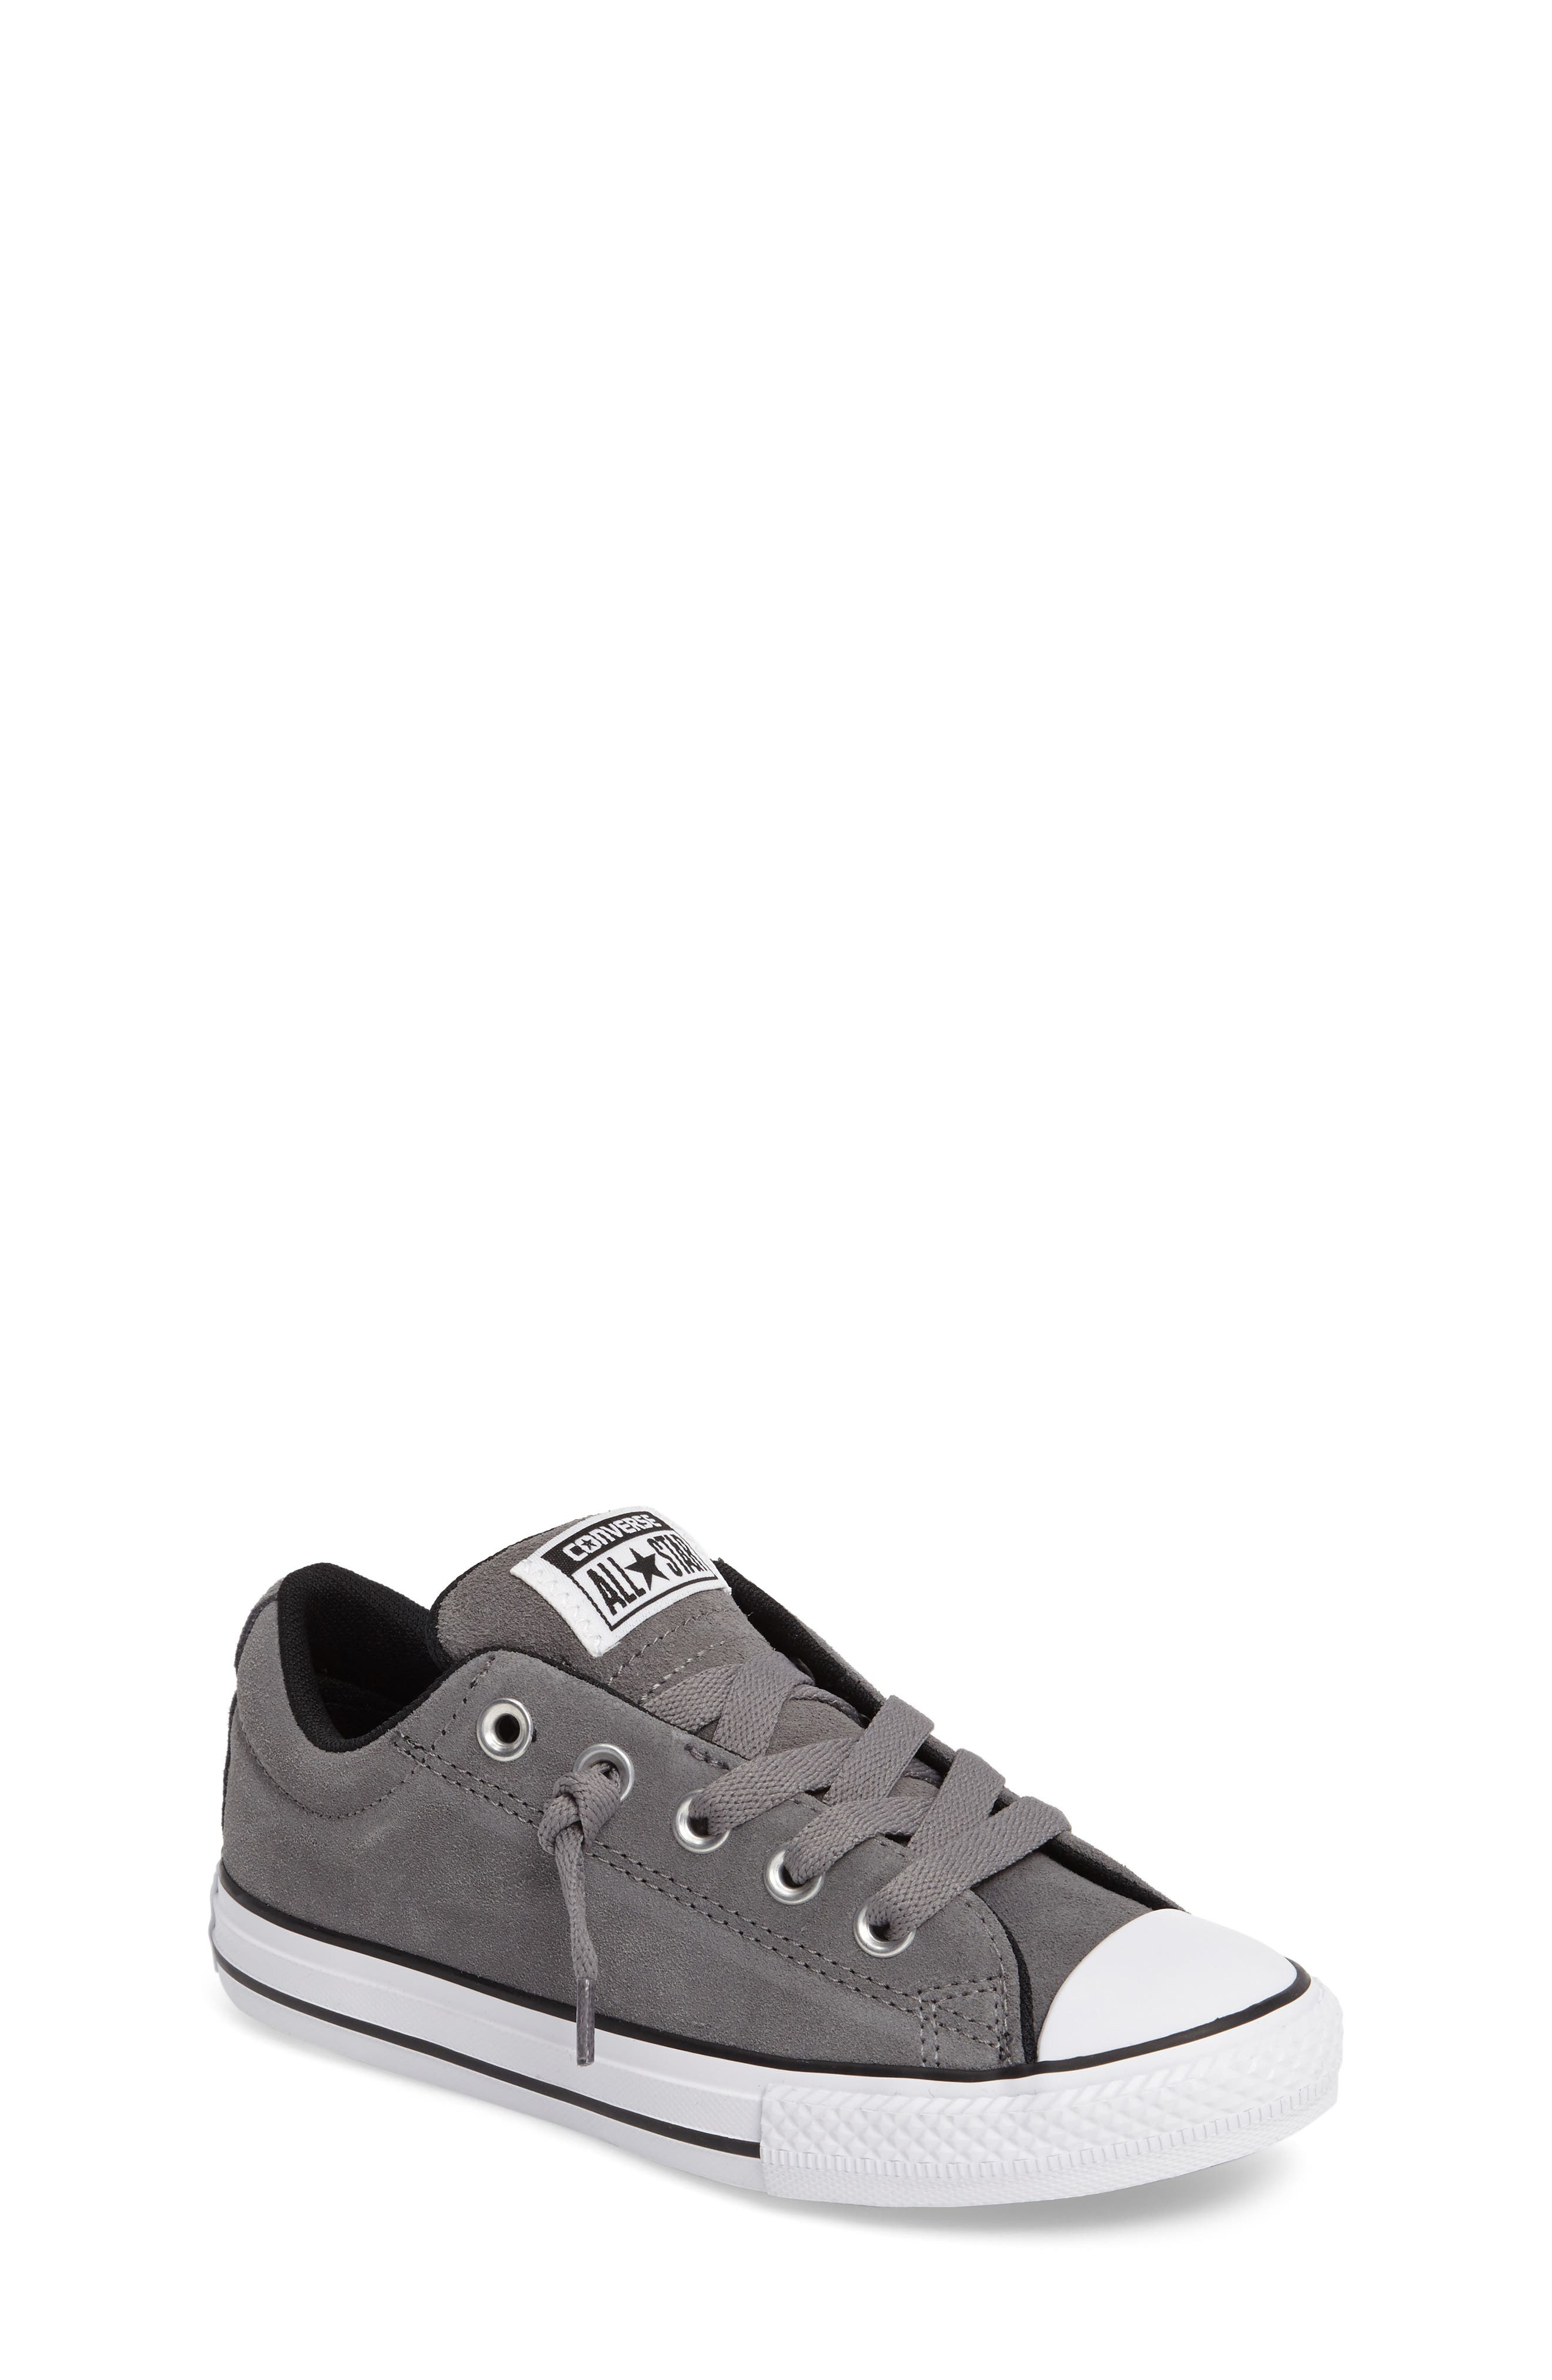 Chuck Taylor<sup>®</sup> All Star<sup>®</sup> Street Sneaker,                             Main thumbnail 1, color,                             038